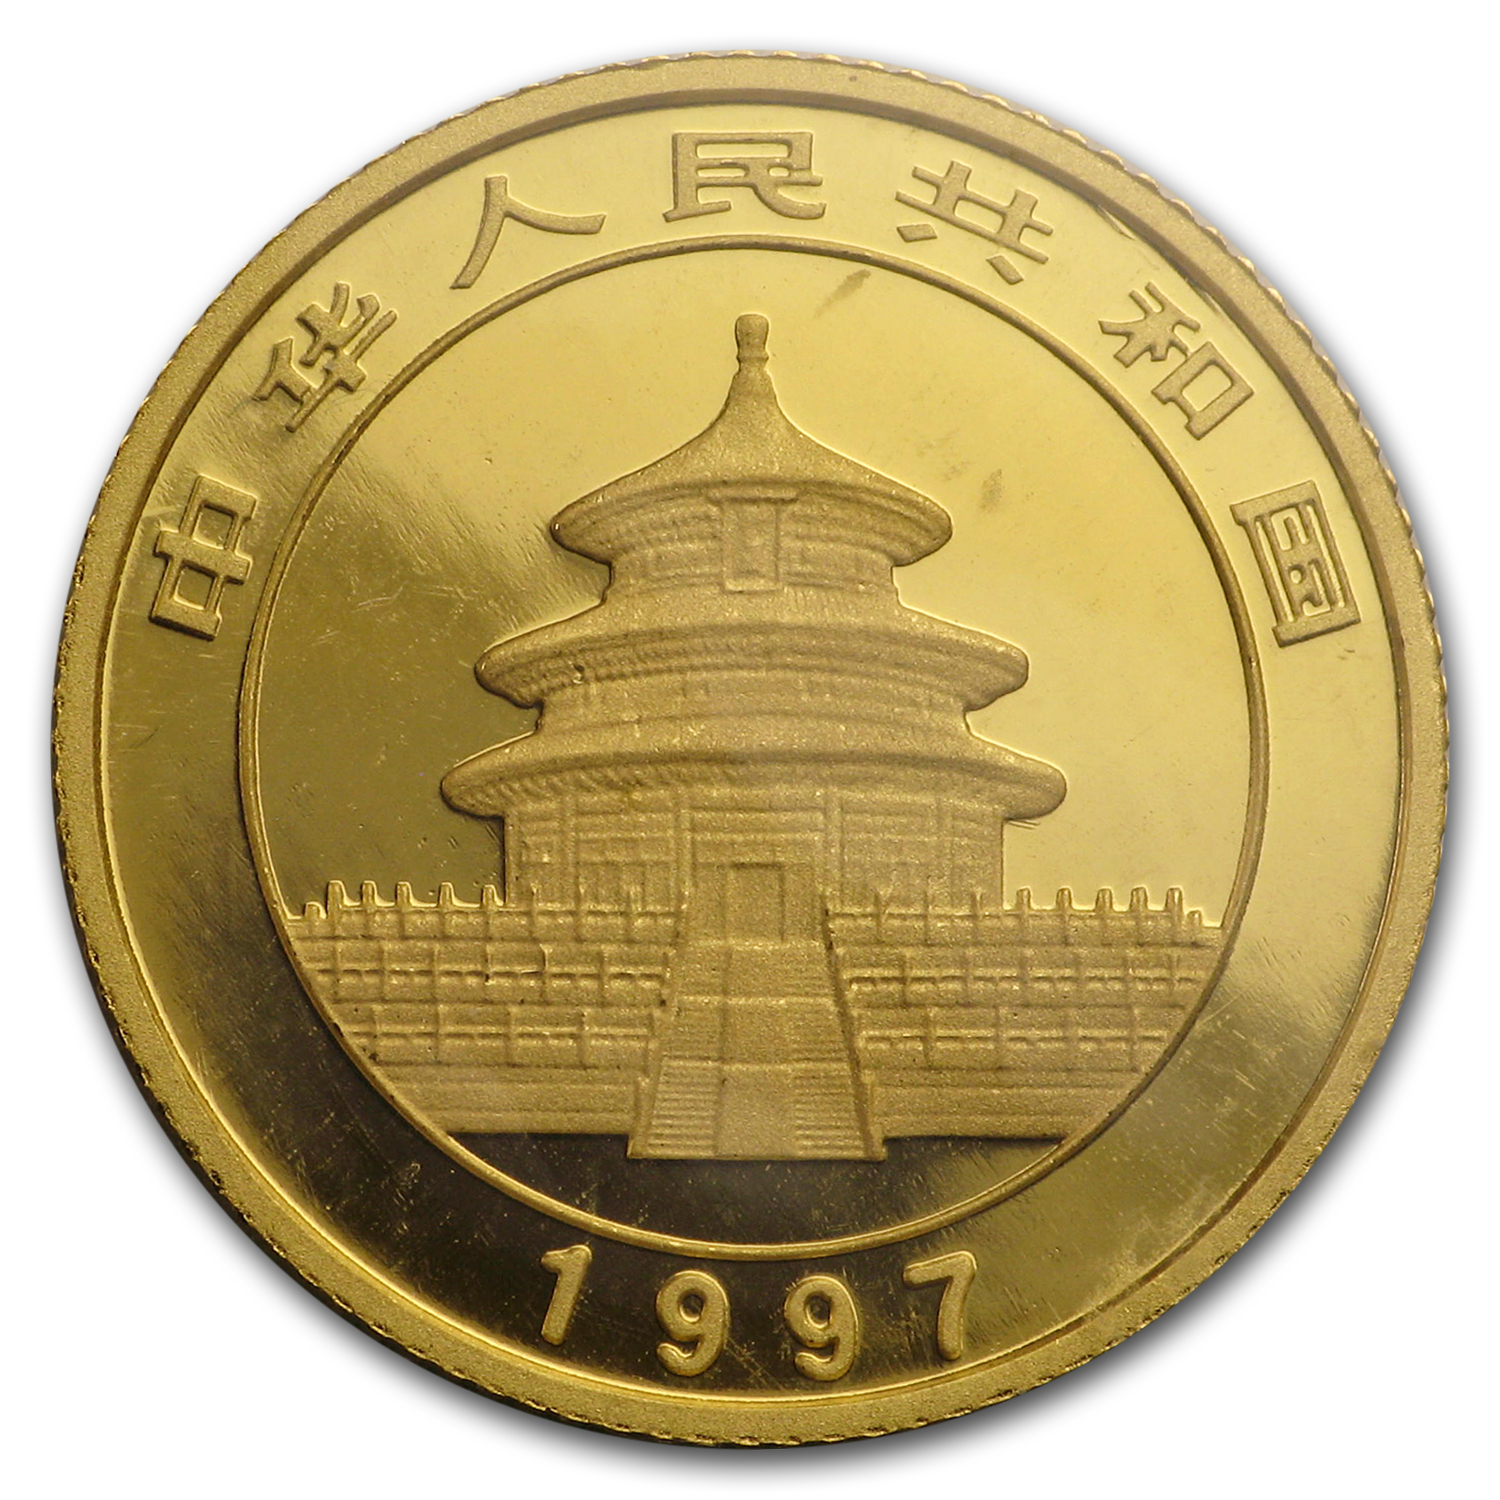 1997 China 1/10 oz Gold Panda Large Date BU (Sealed)